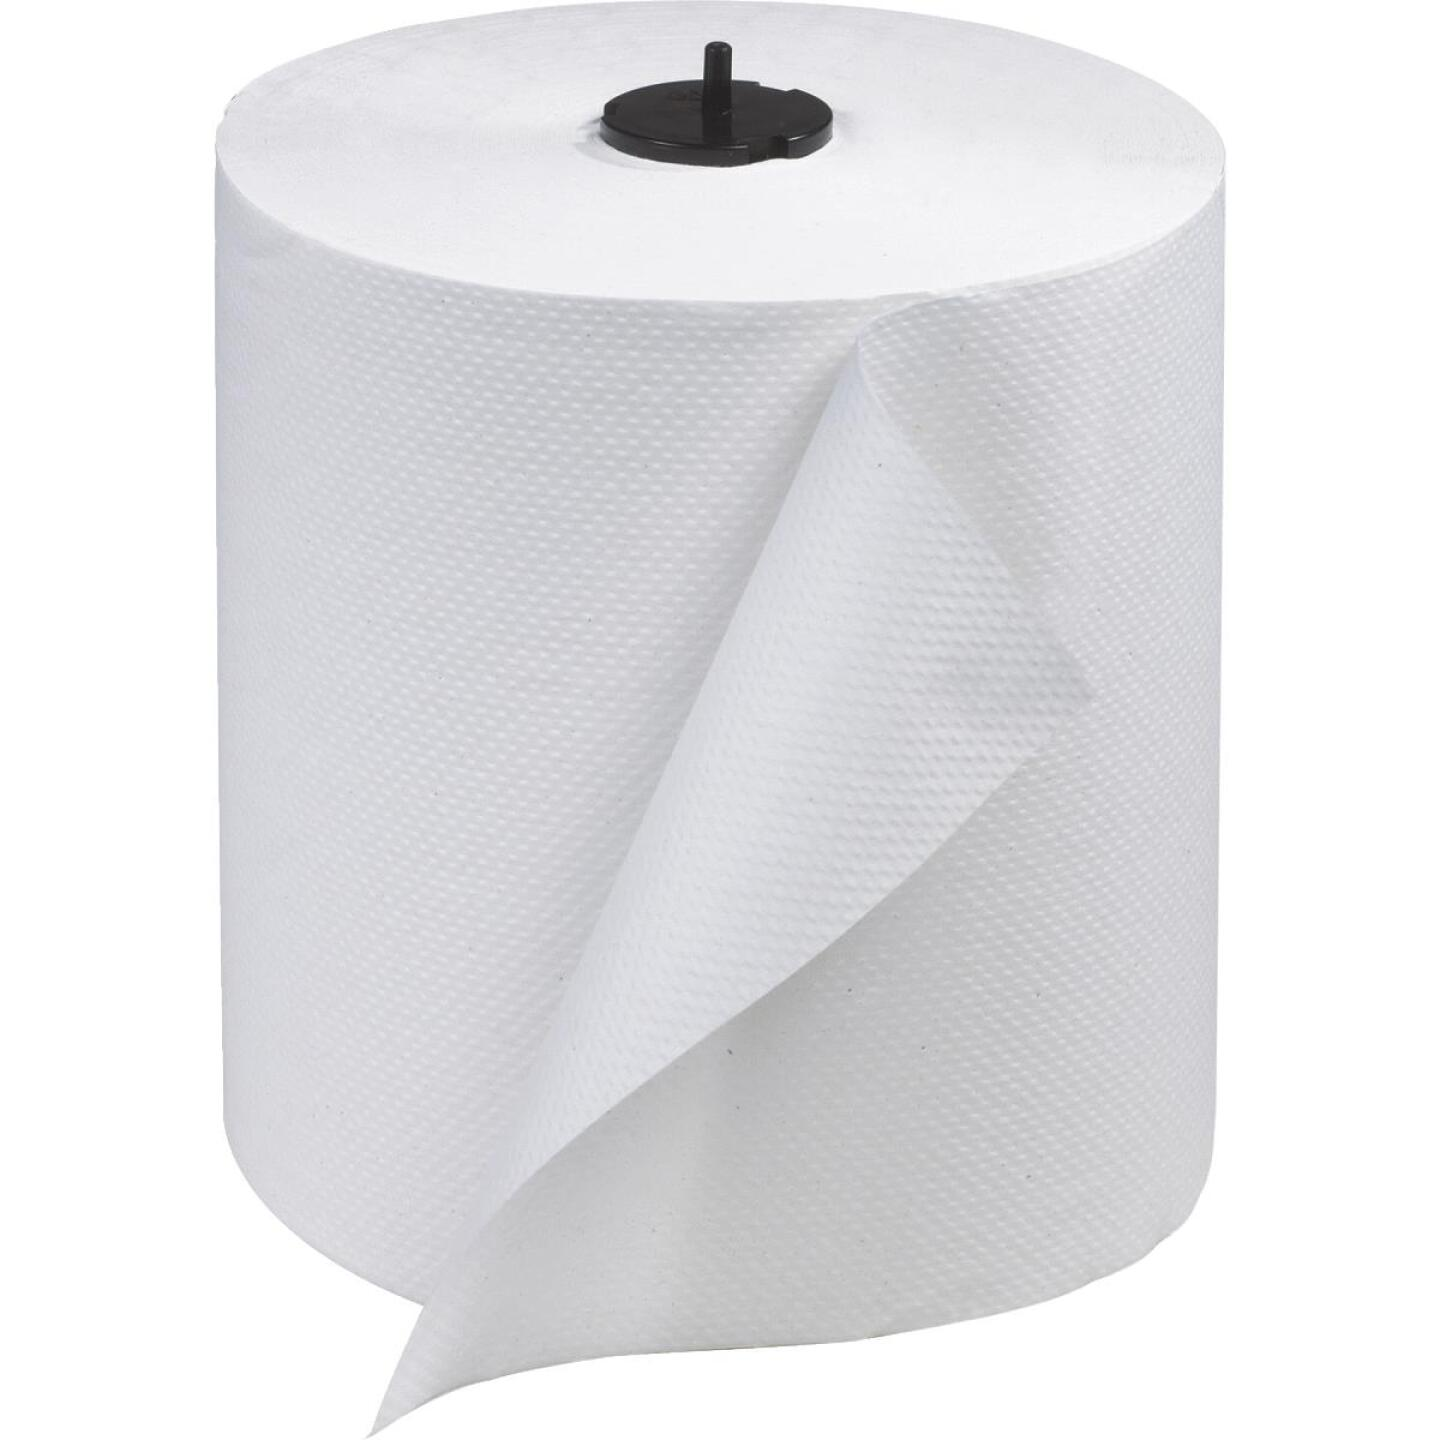 SCA Tork White Advanced Roll Towels (6 Count) Image 1